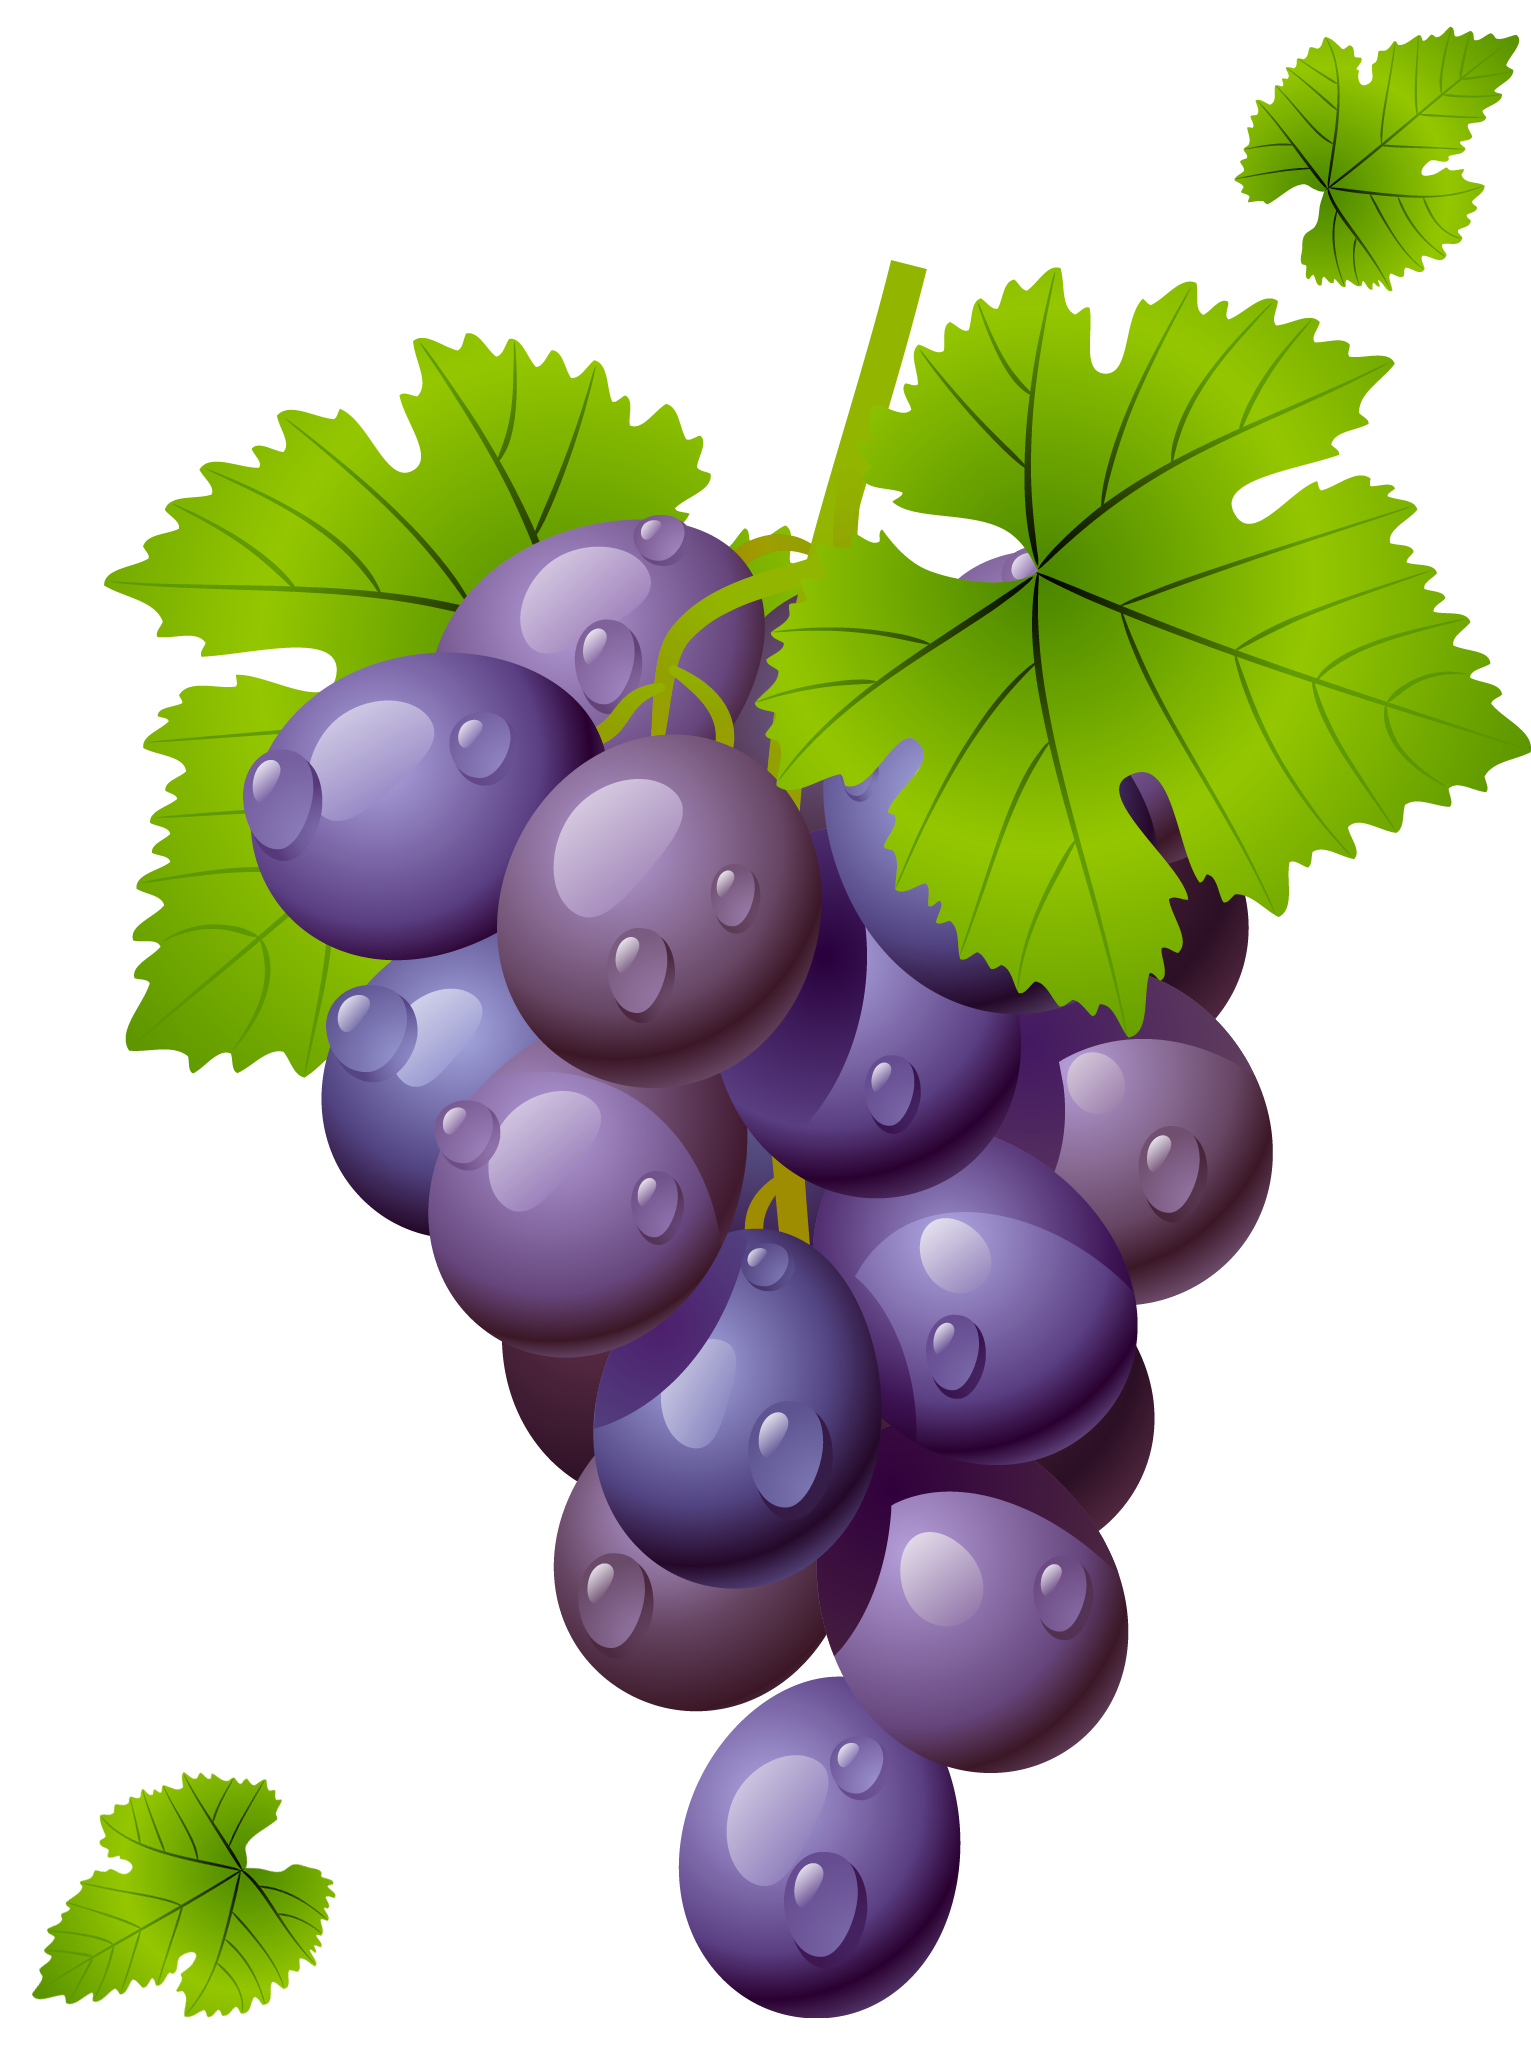 Grape clipart leafy vegetable Grape picture Grapes #28972 with